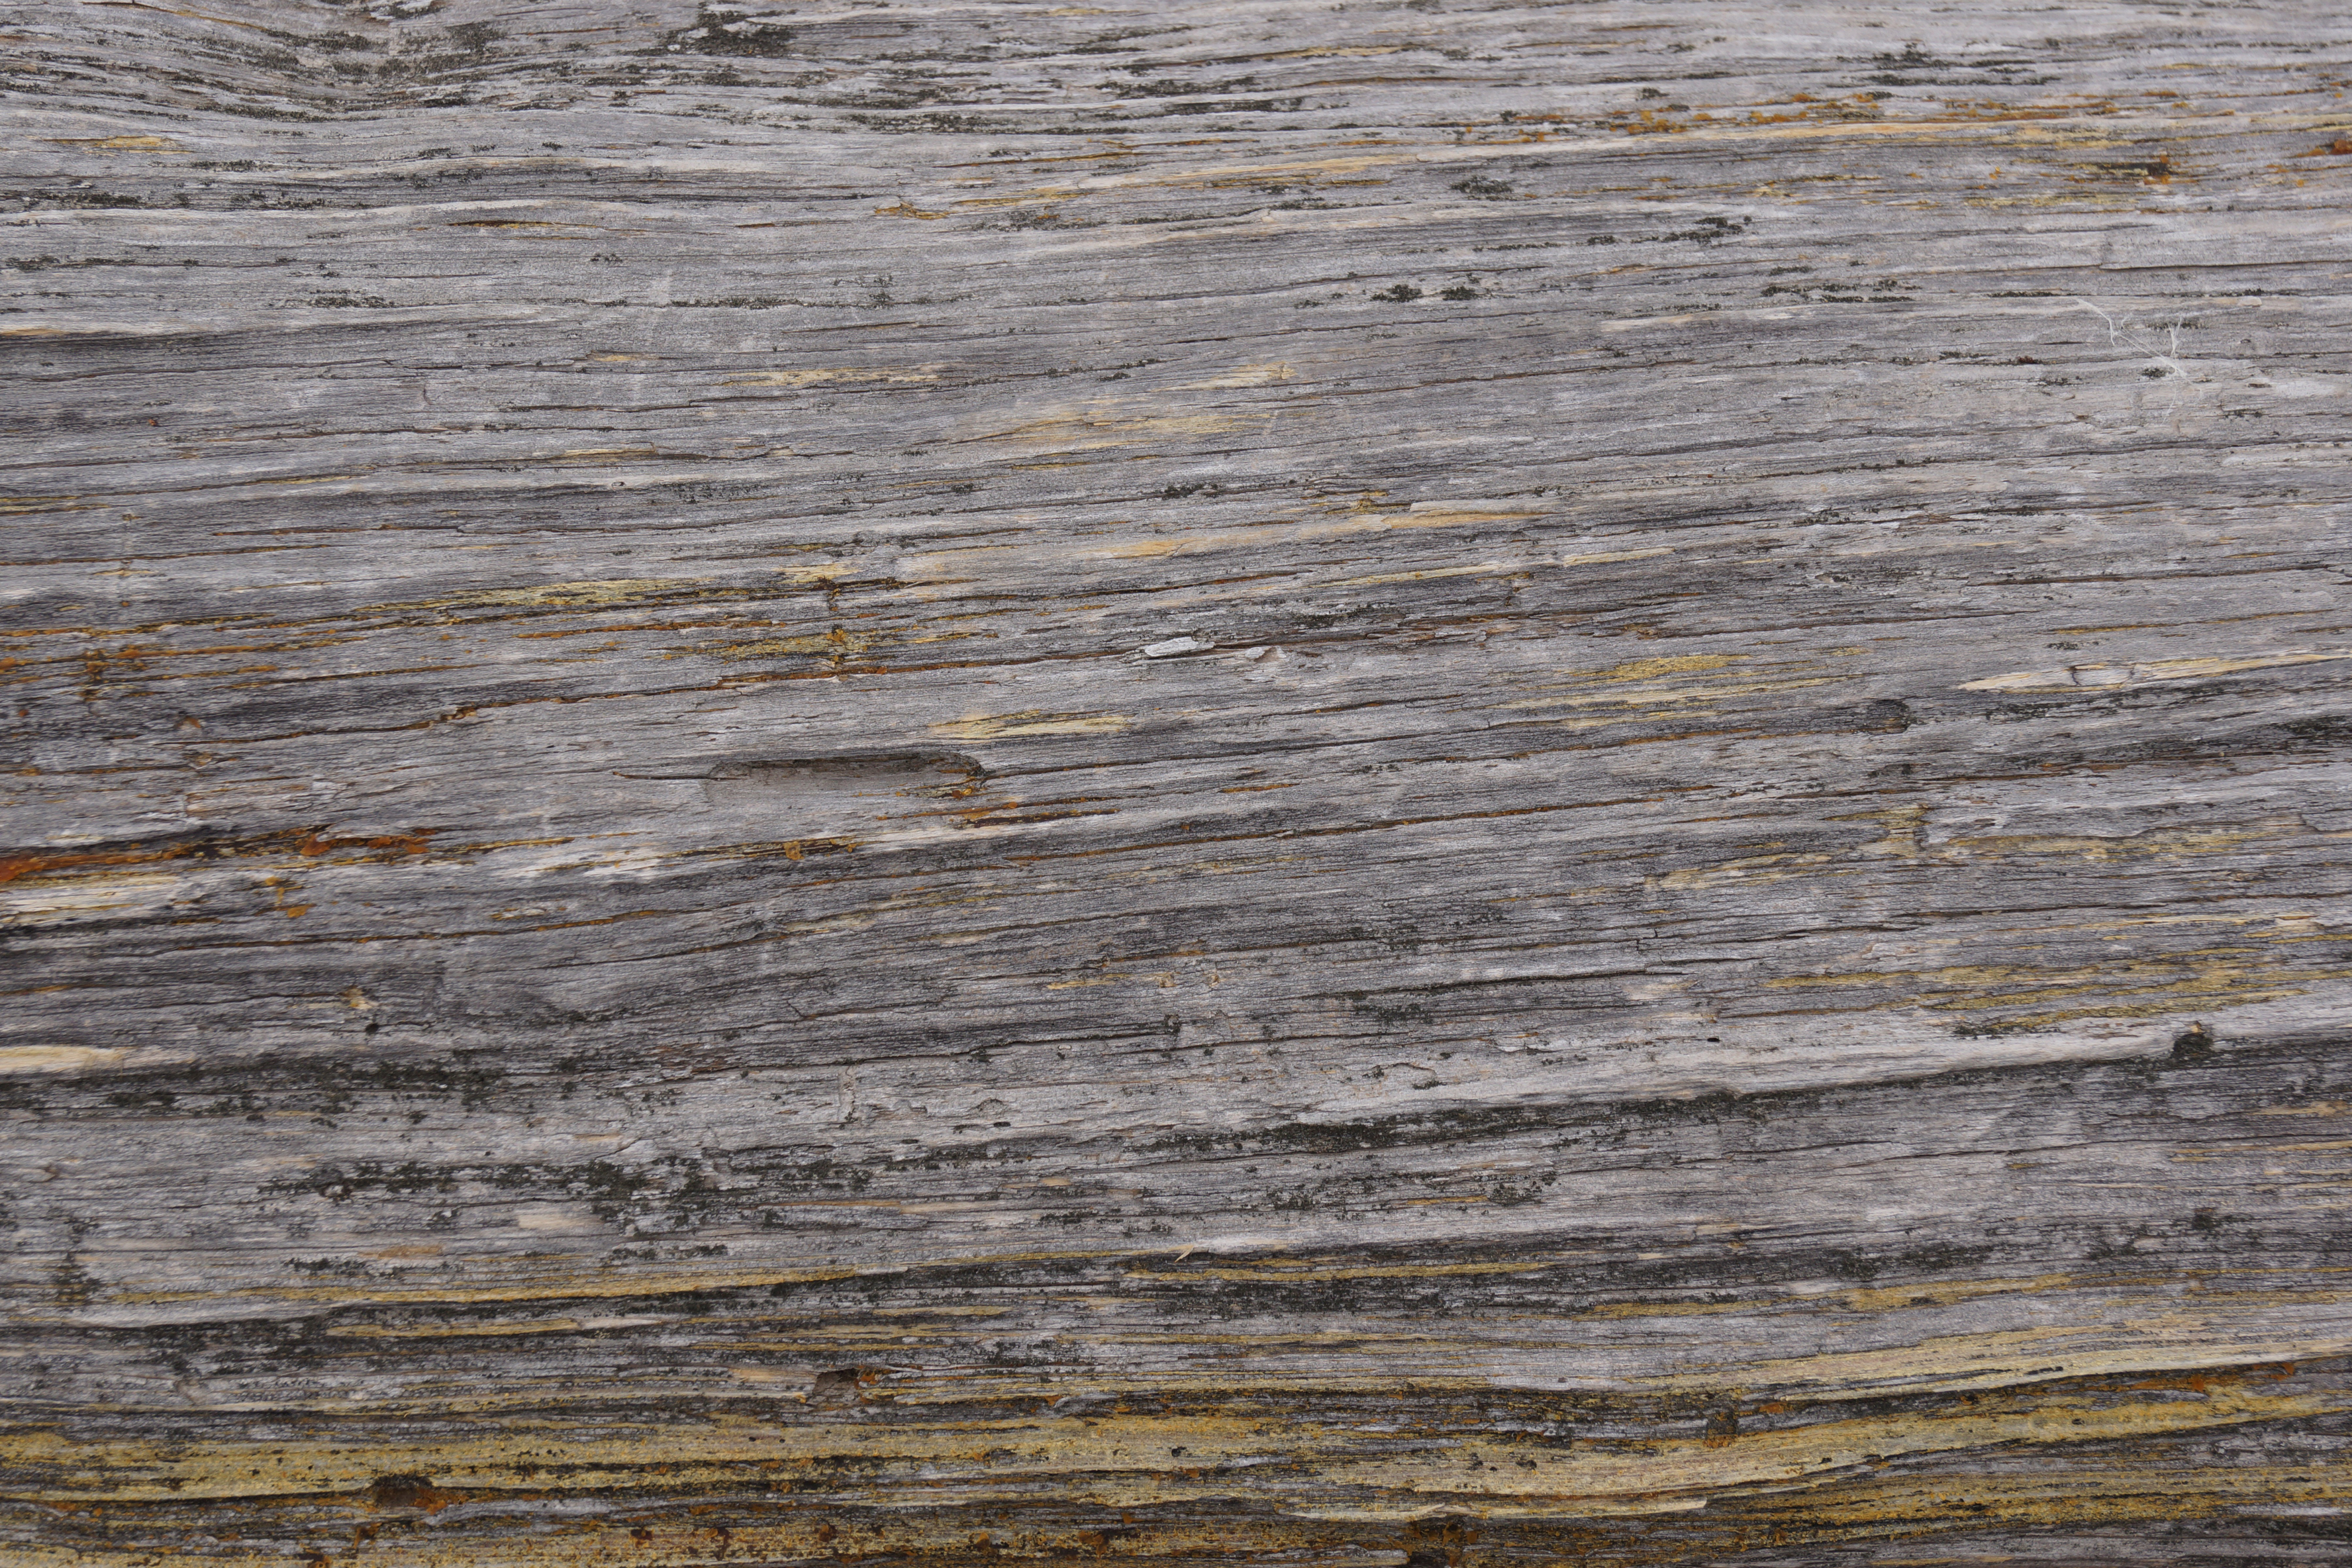 Free High Rez Grunge Texture Download Grainy Wood Grain